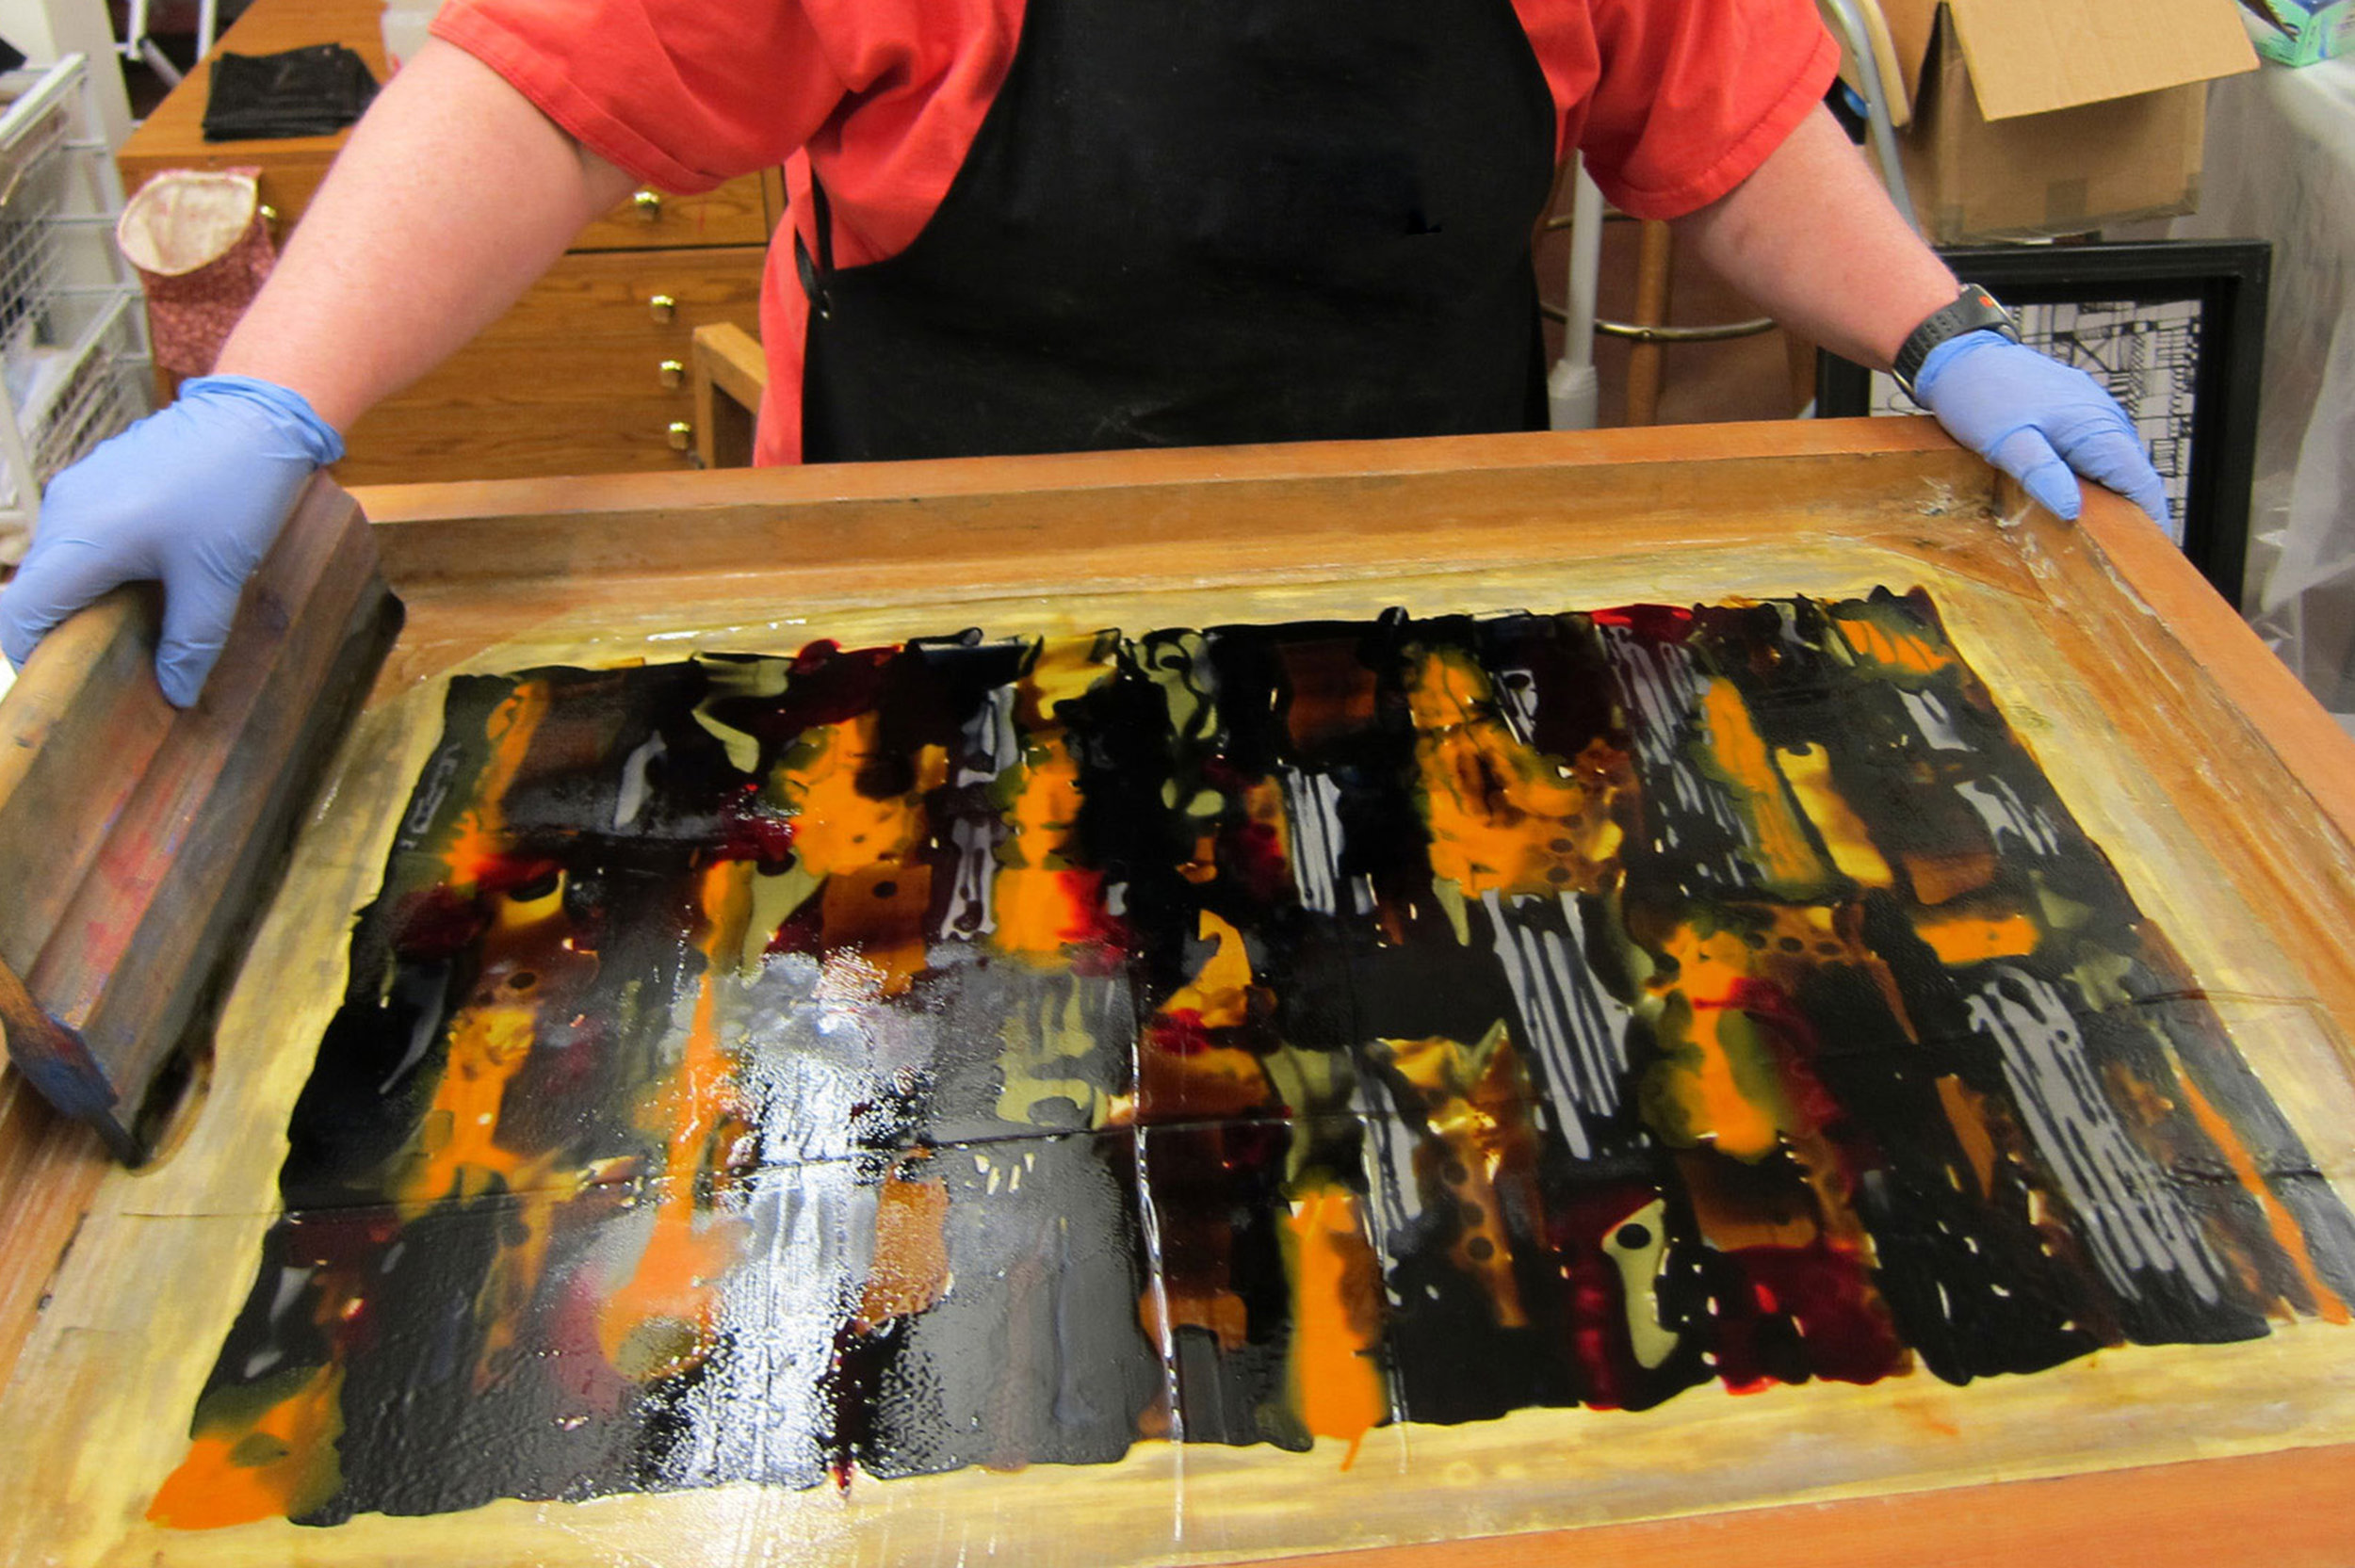 Learning silkscreen techniques in our artist workshop in Napa Valley California. Art Travel Workshop students can select from many artistic disciplines